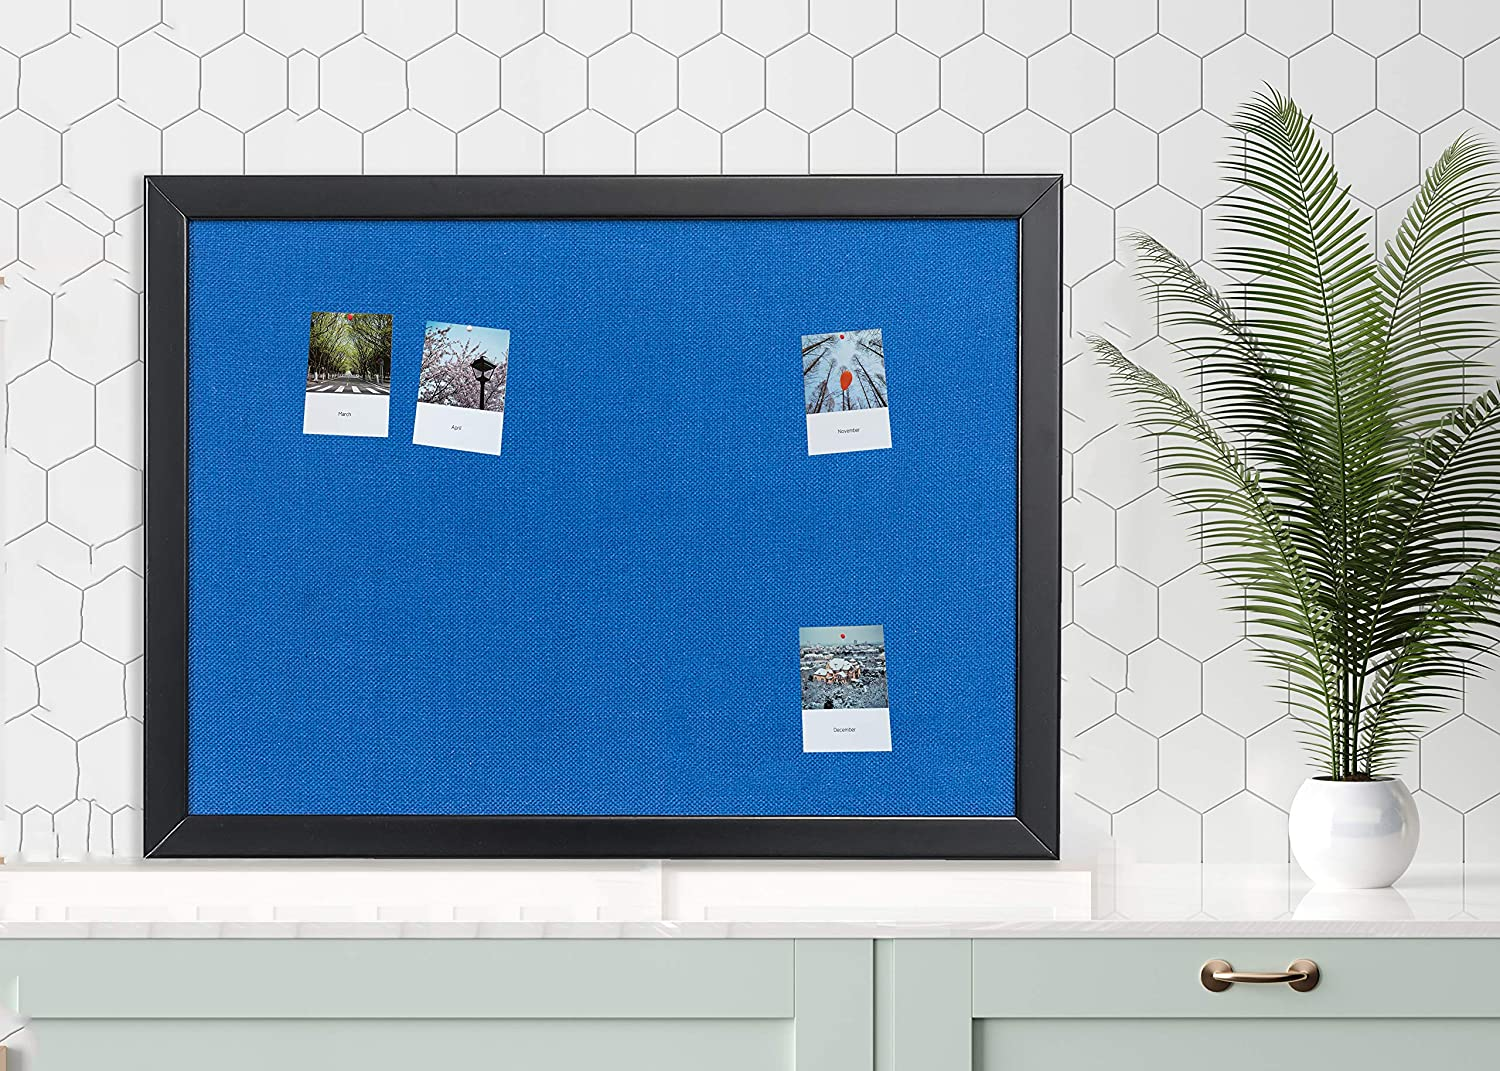 Bulletin Board 36 x 48 Inch 100/% Wood Framed Canvas Cork Board with Grey Fabric Wall Mounted Notice Board for Home Office School